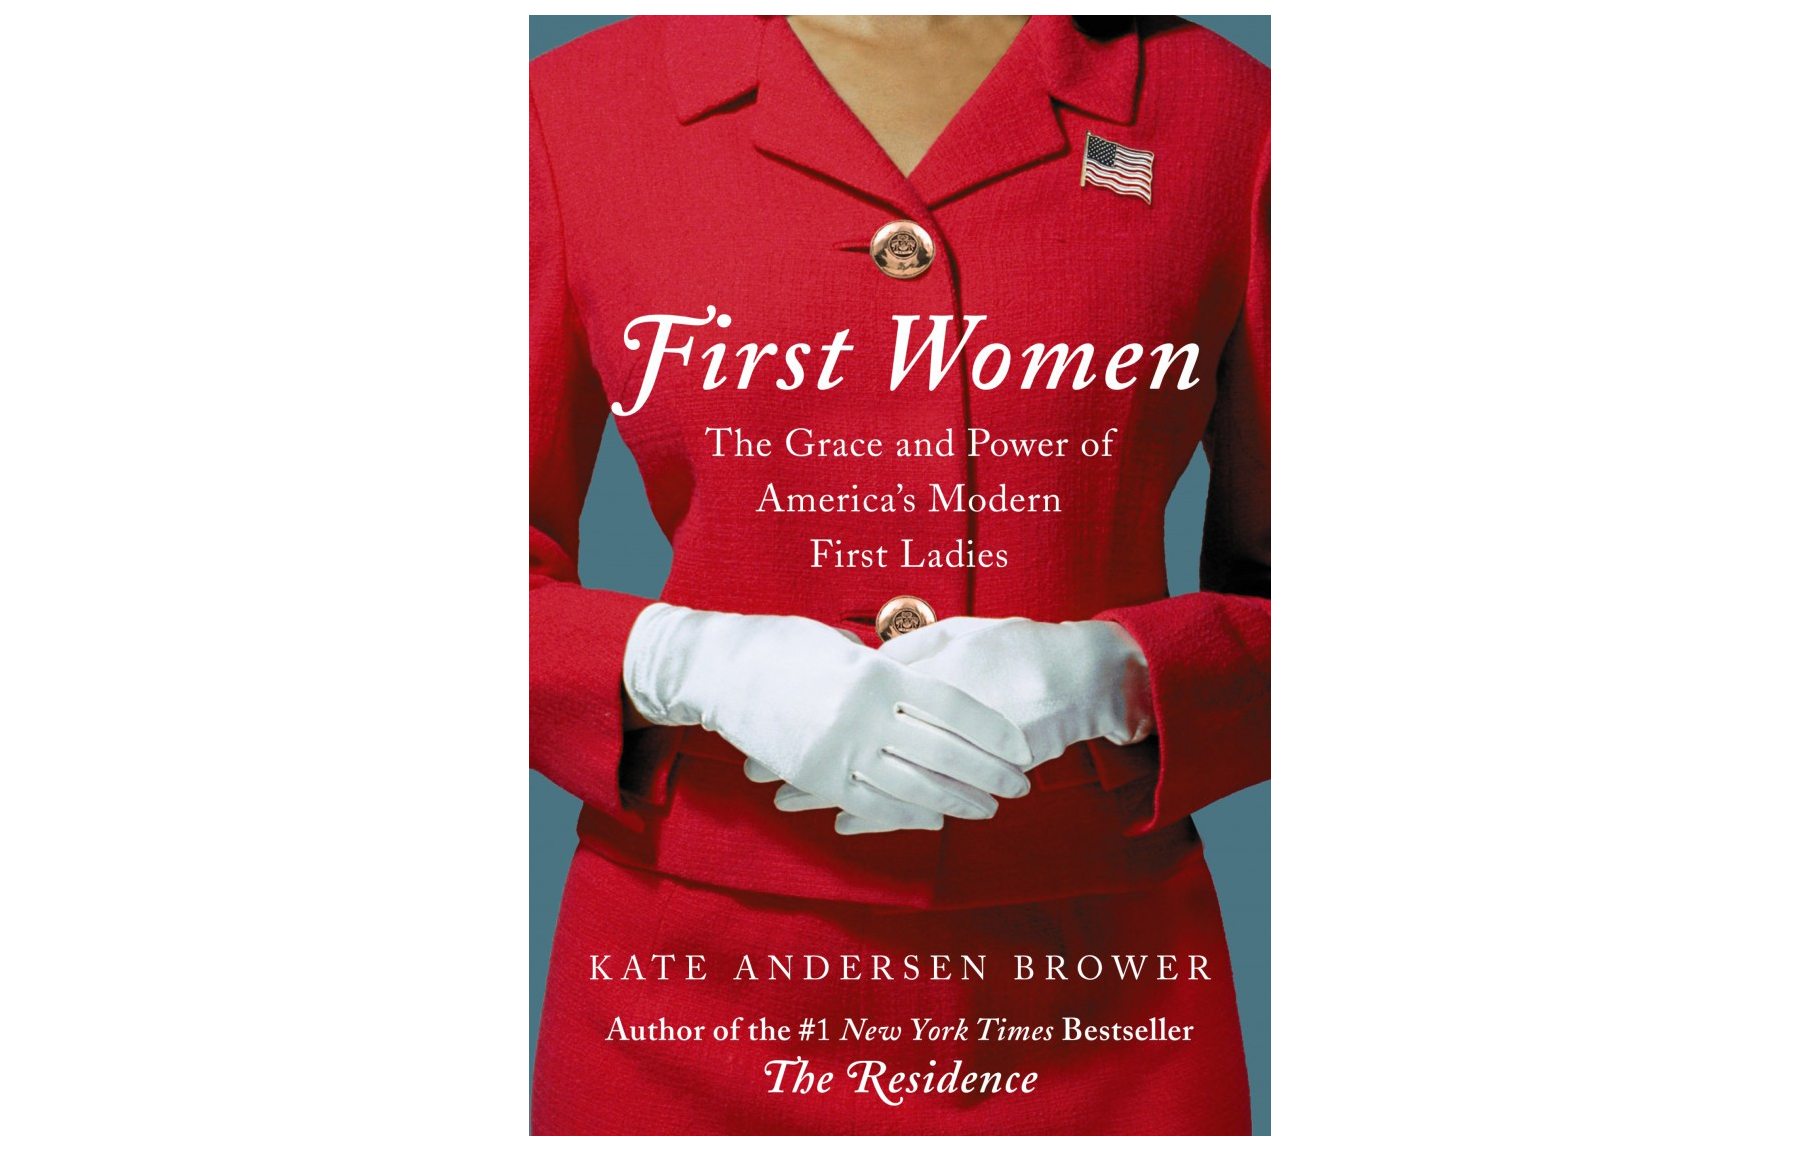 First Women, by Kate Andersen Brower